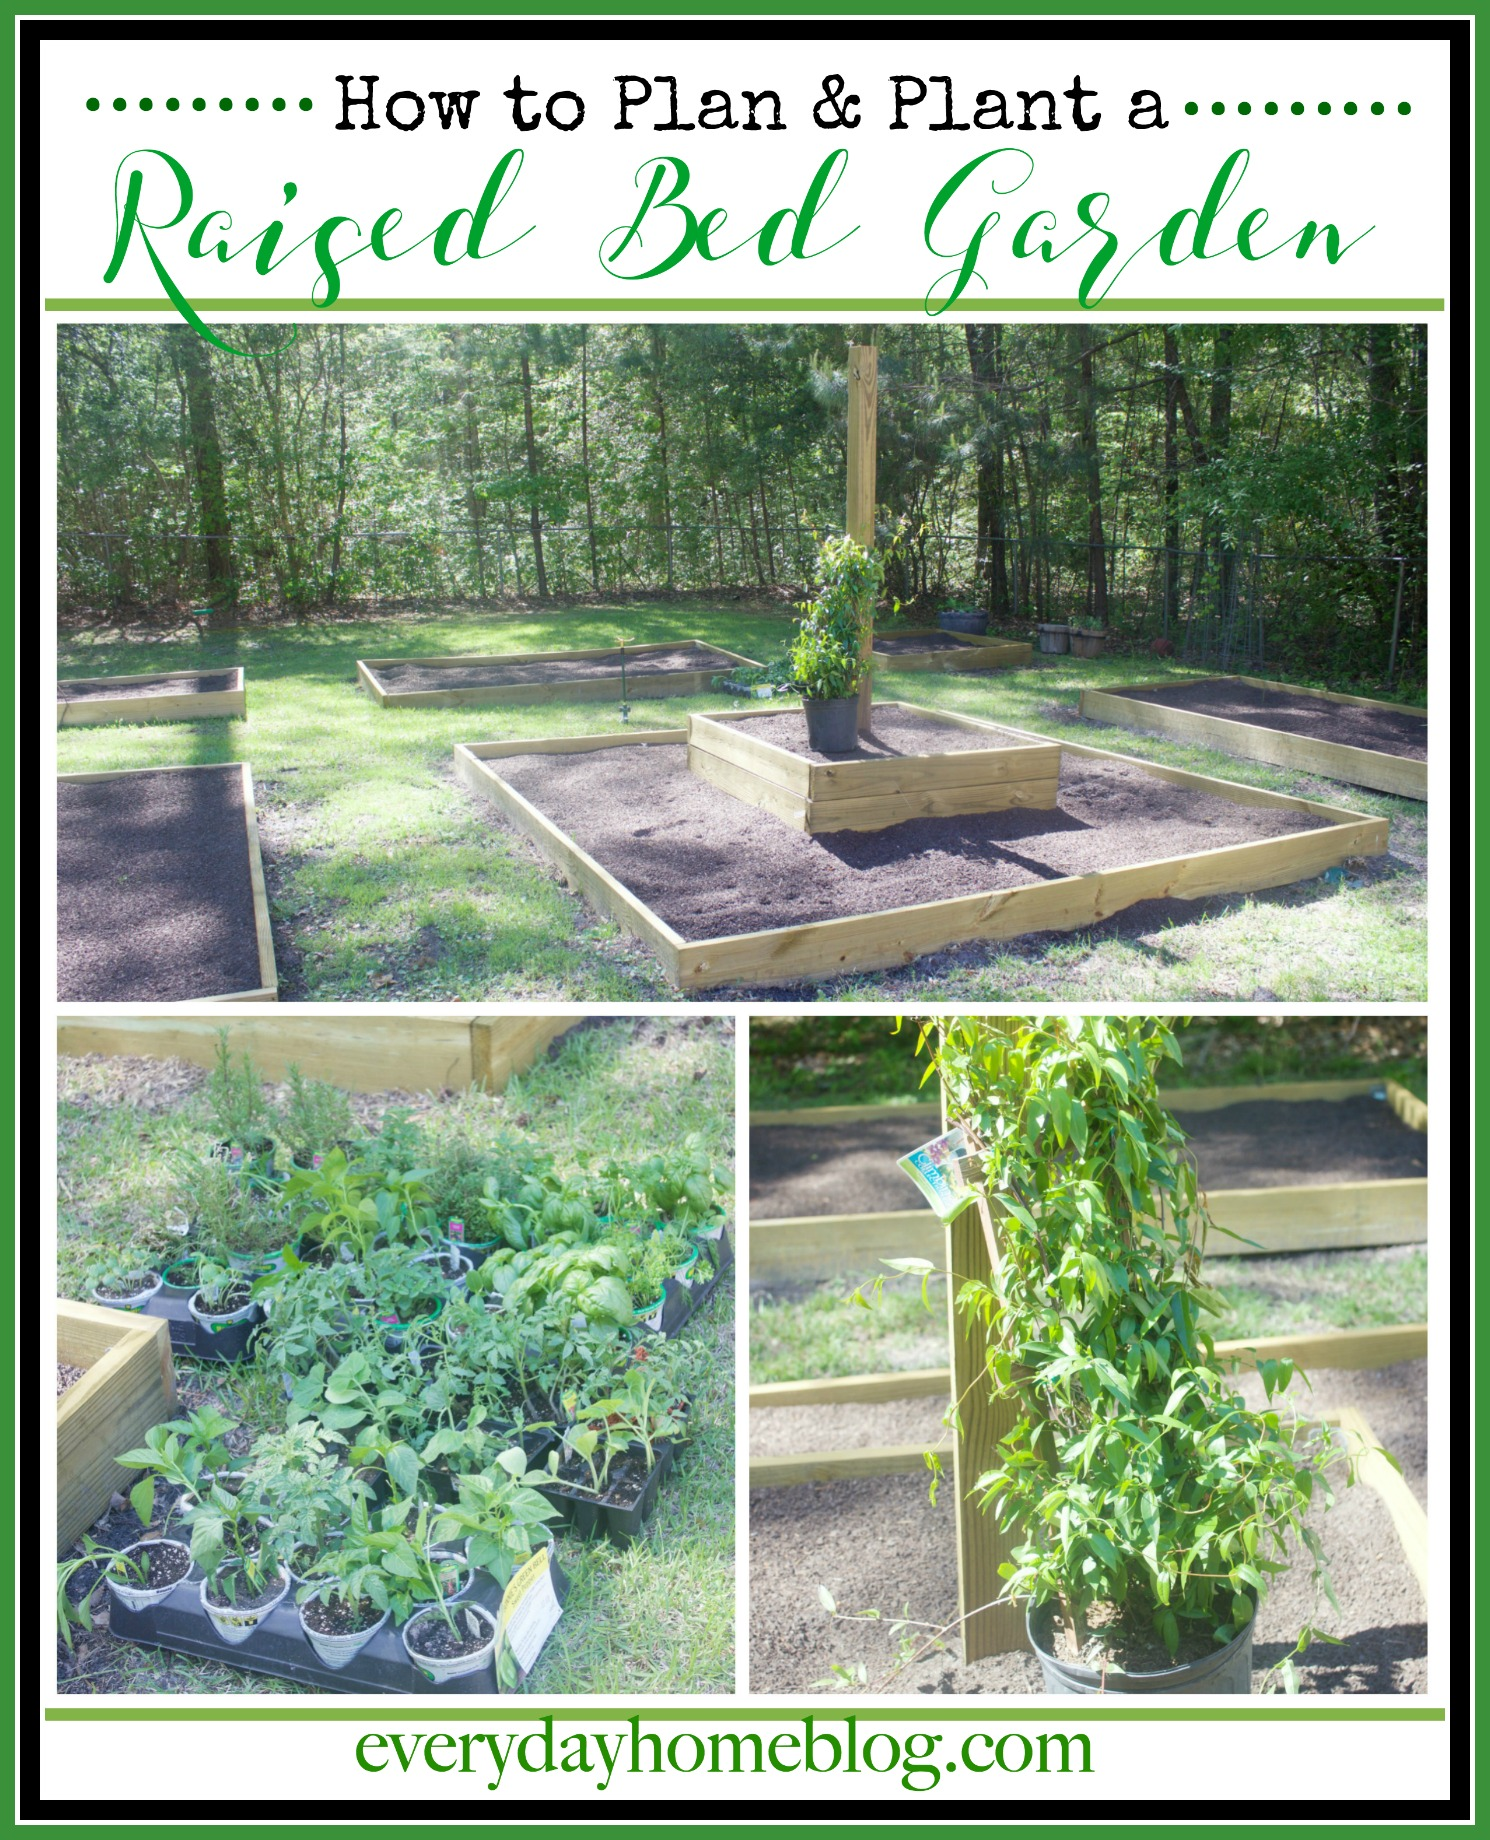 How to Plan & Plant a Raised Bed Garden | The Everyday Home